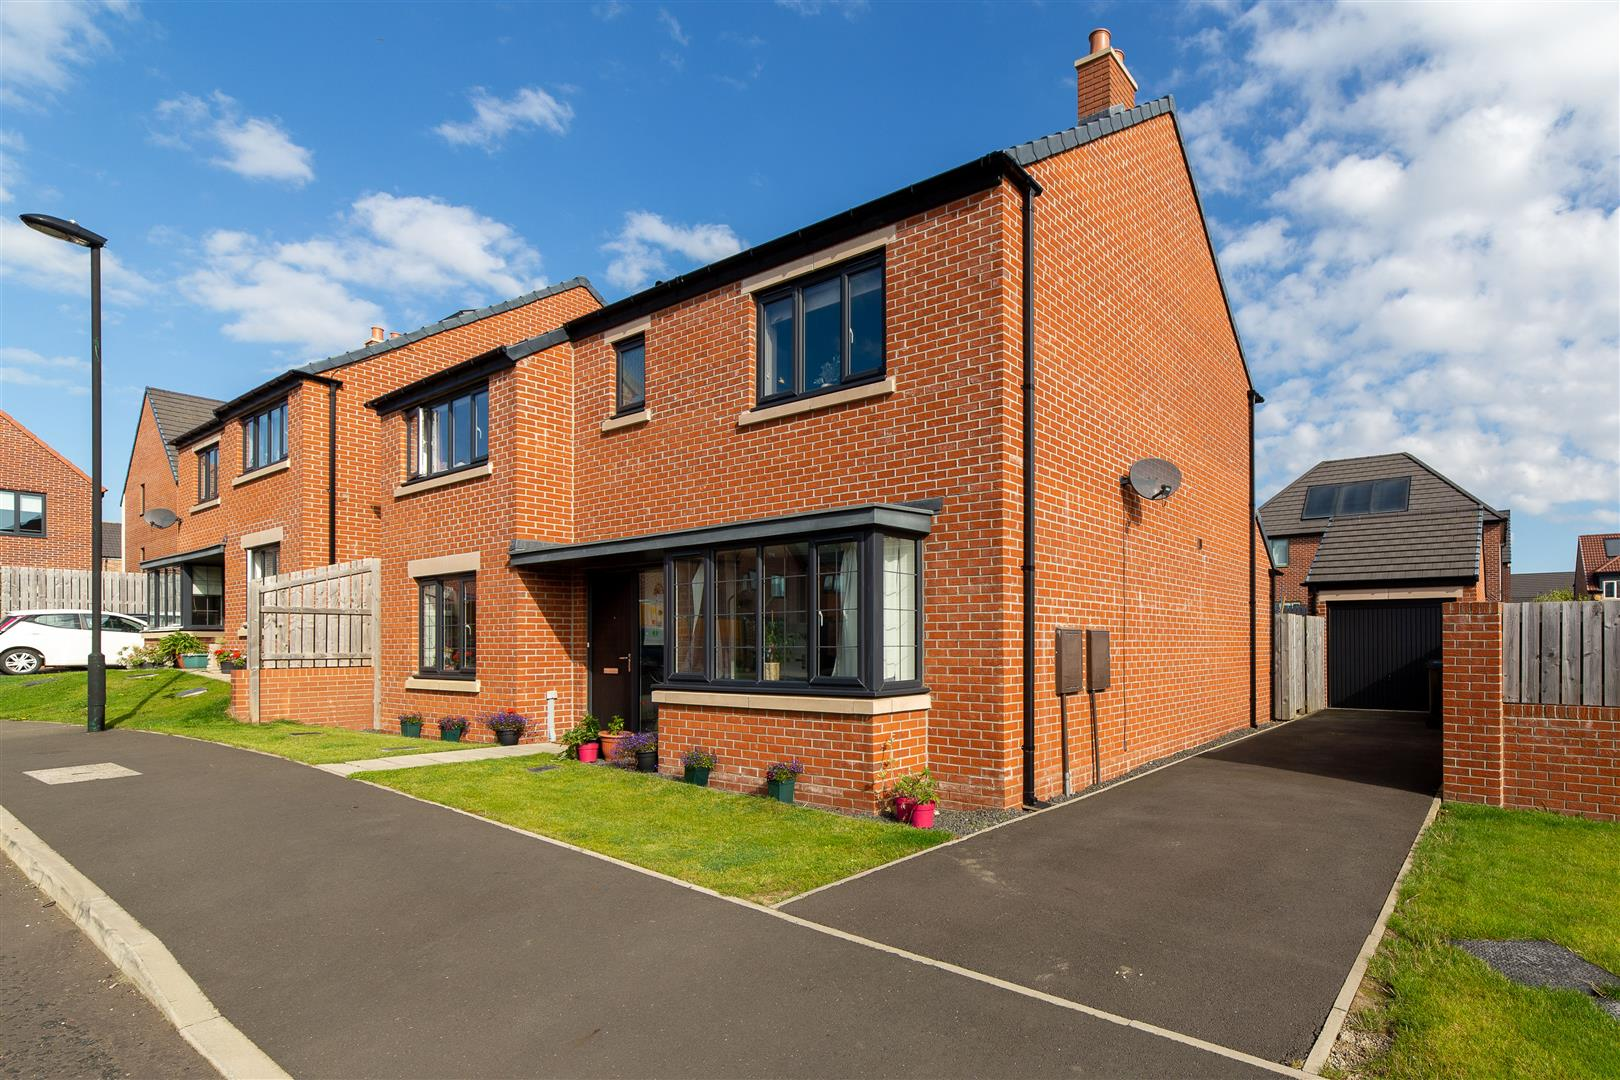 4 bed detached house for sale in Newcastle Upon Tyne, NE13 6NN  - Property Image 1